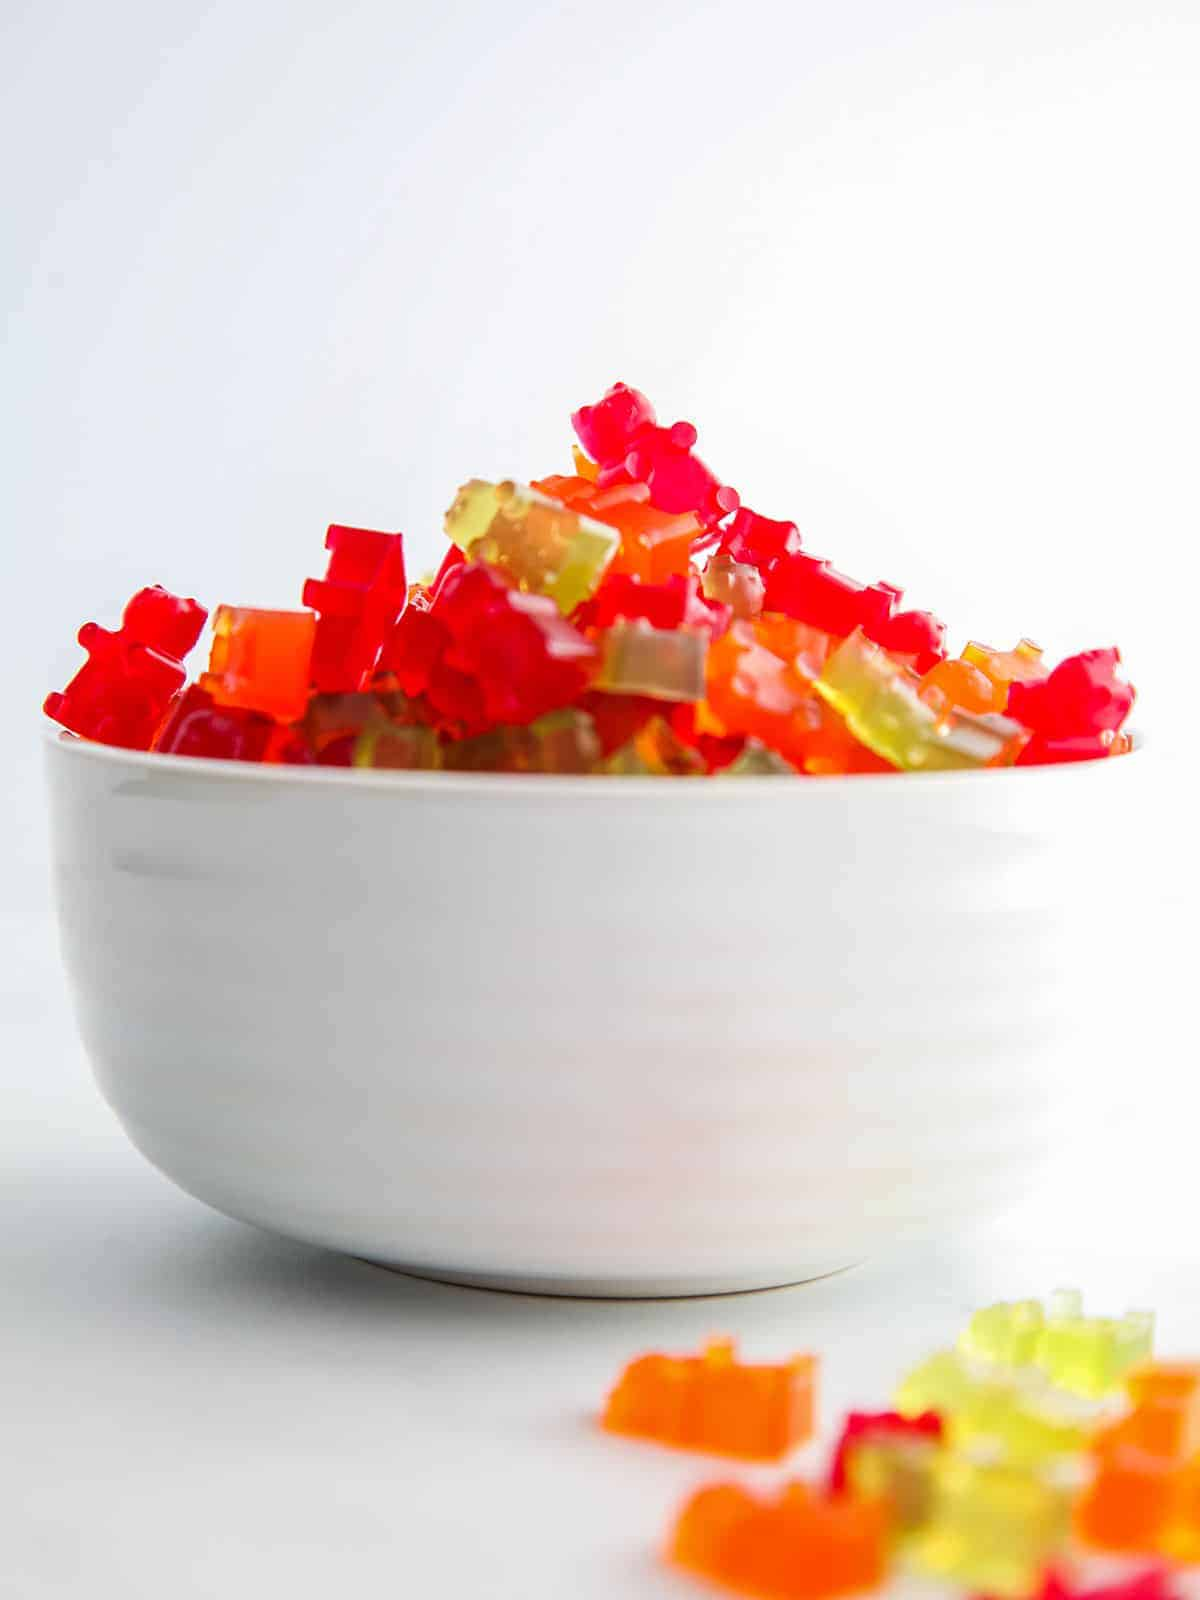 A white bowl of red, green and orange gummy bears